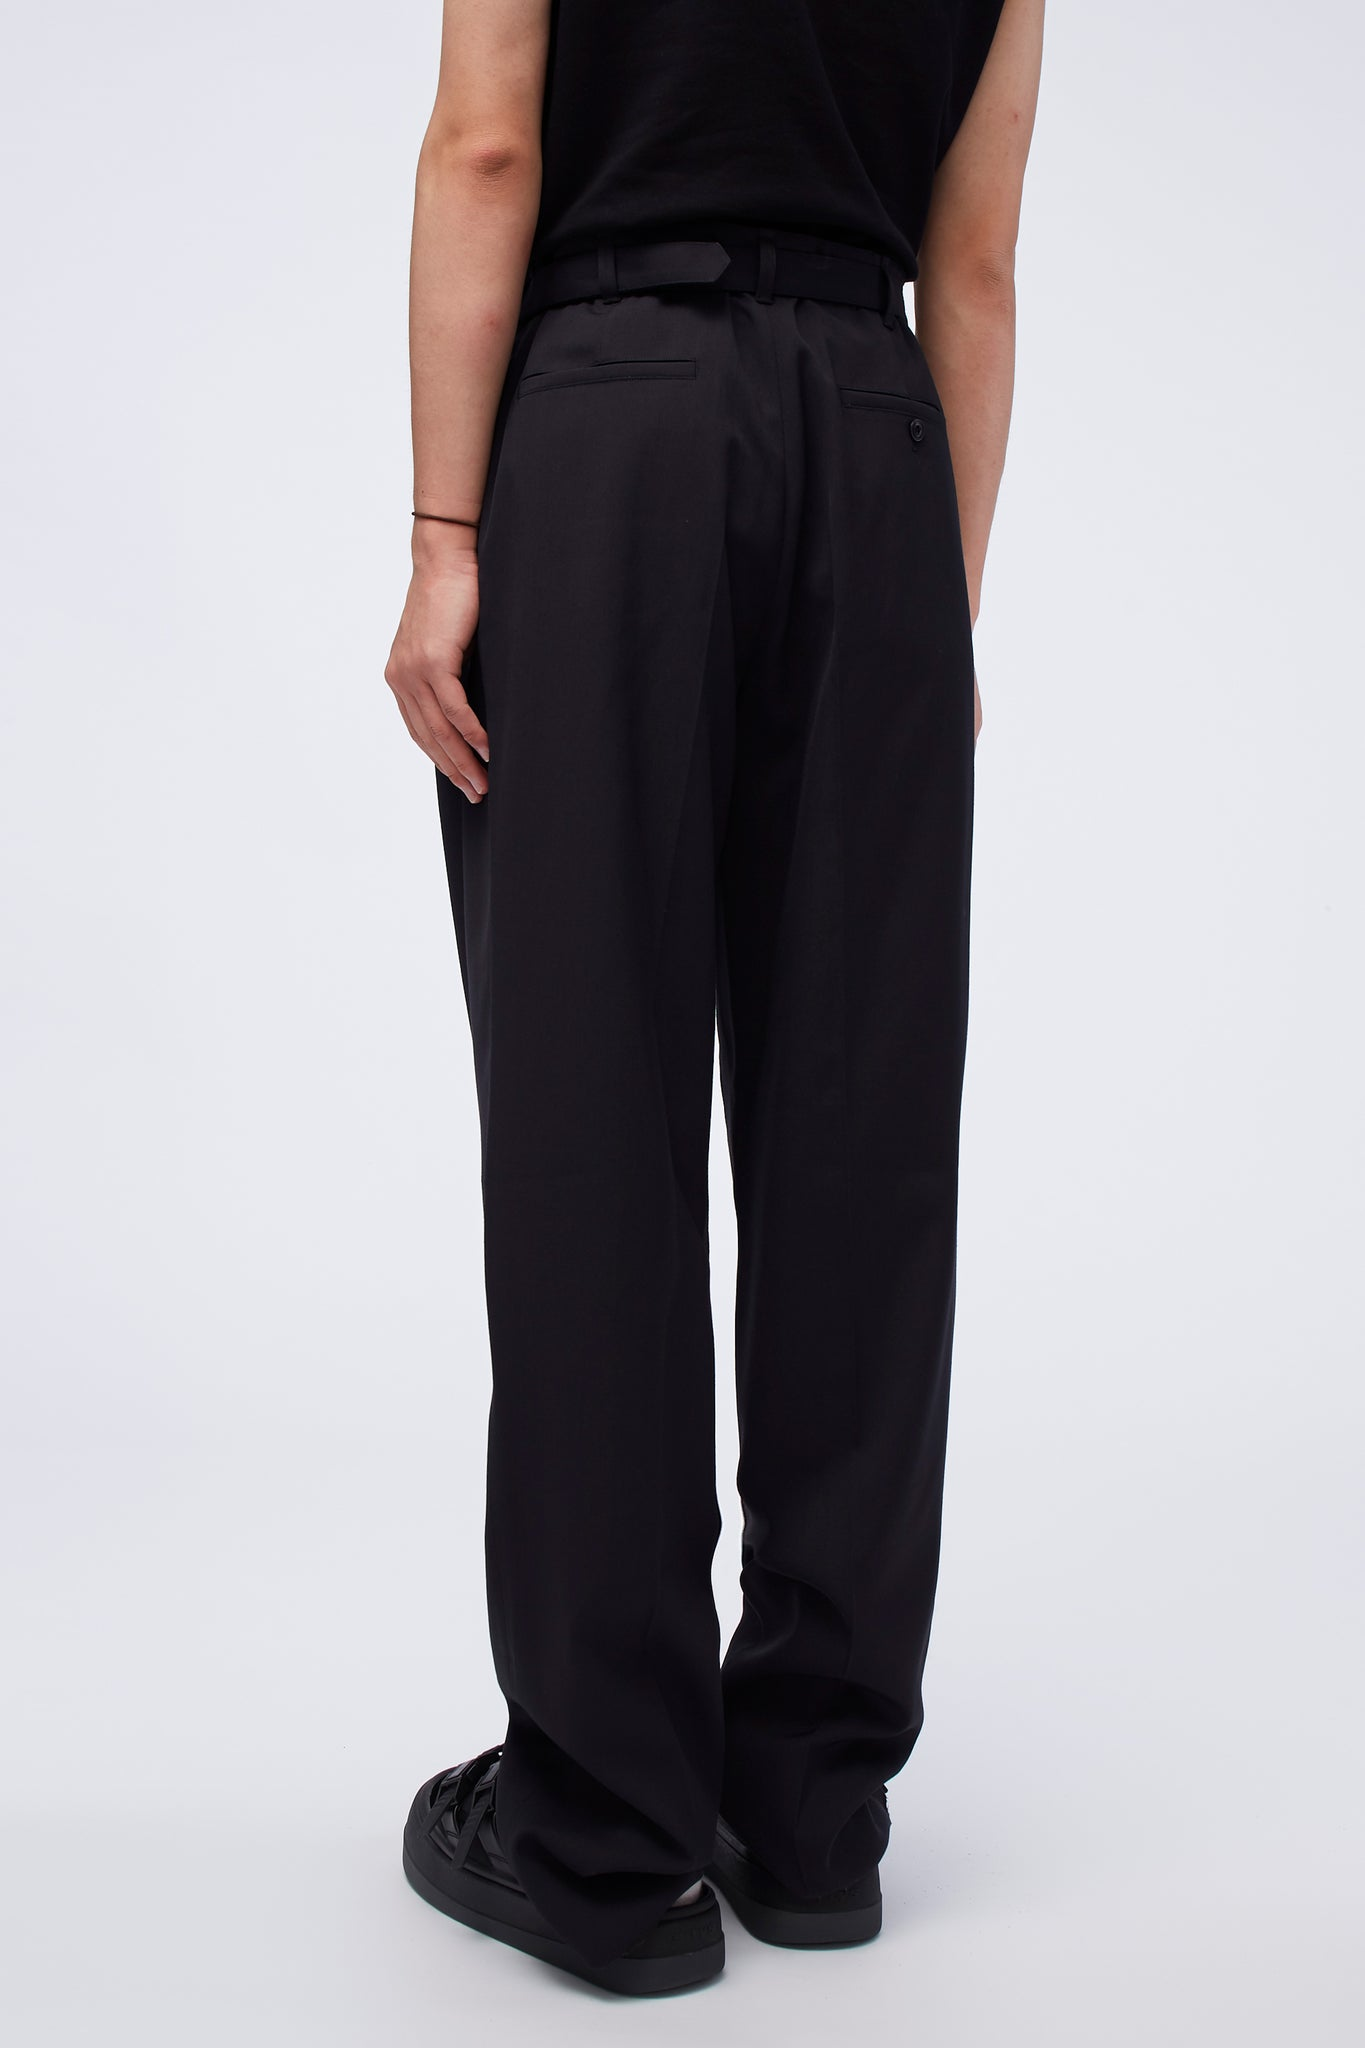 Belted Pleat Pants Caviar